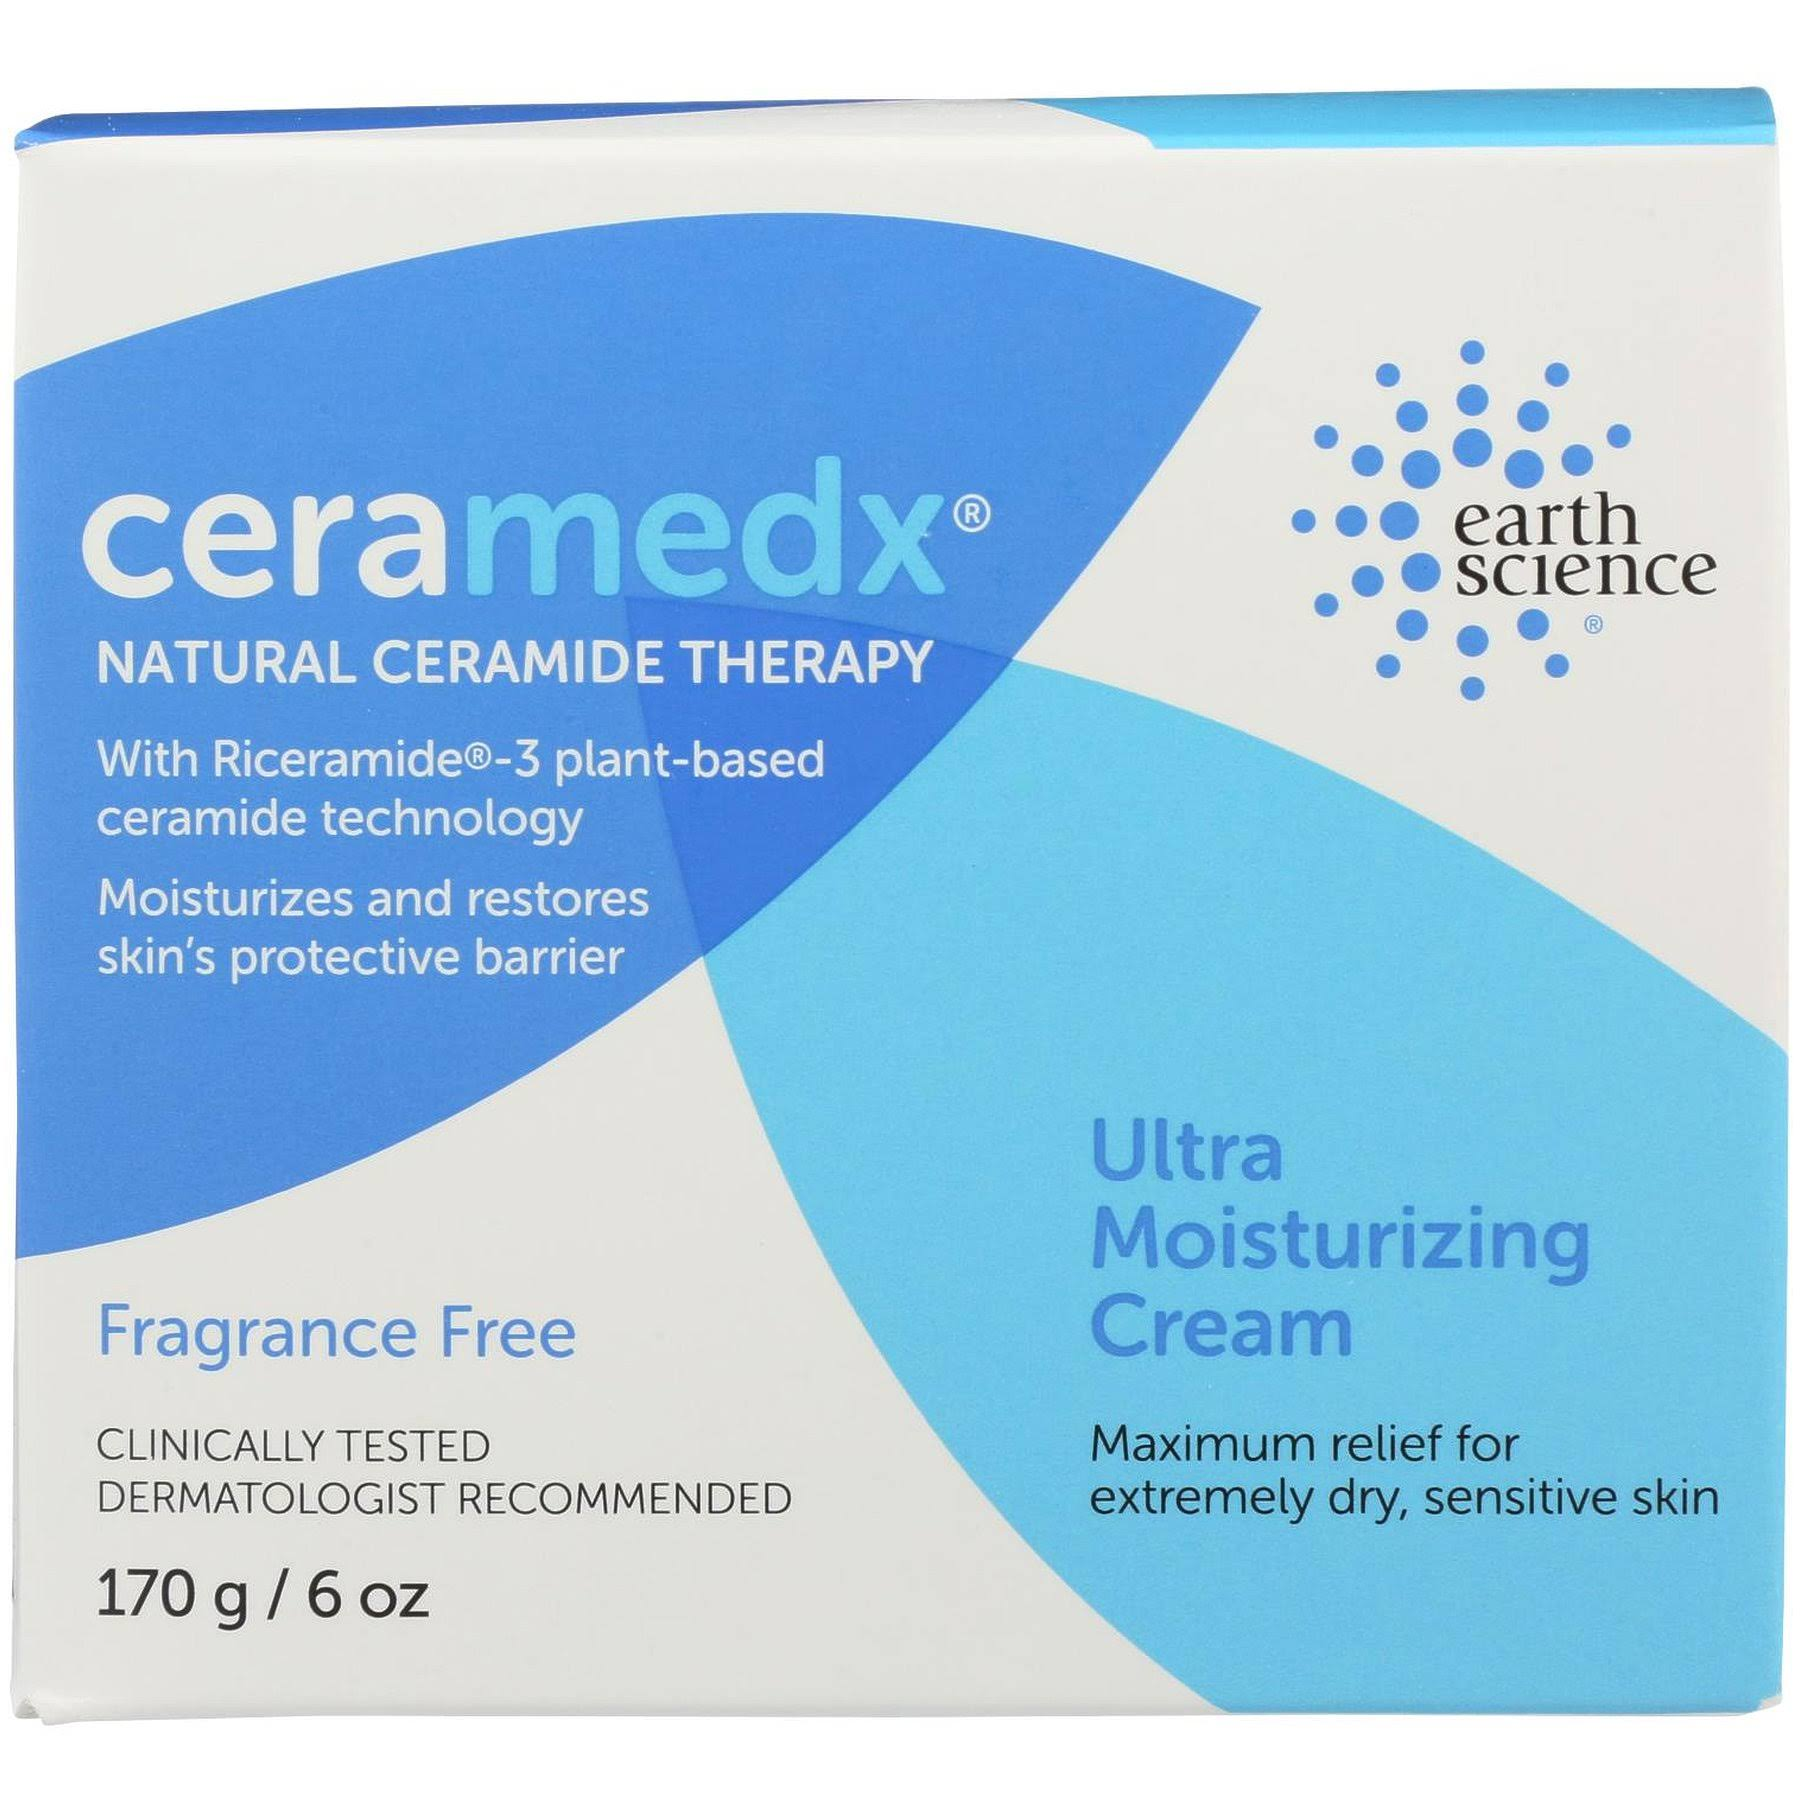 Ceramedx Fragrance Free Ultra Moisturizing Cream - 170g